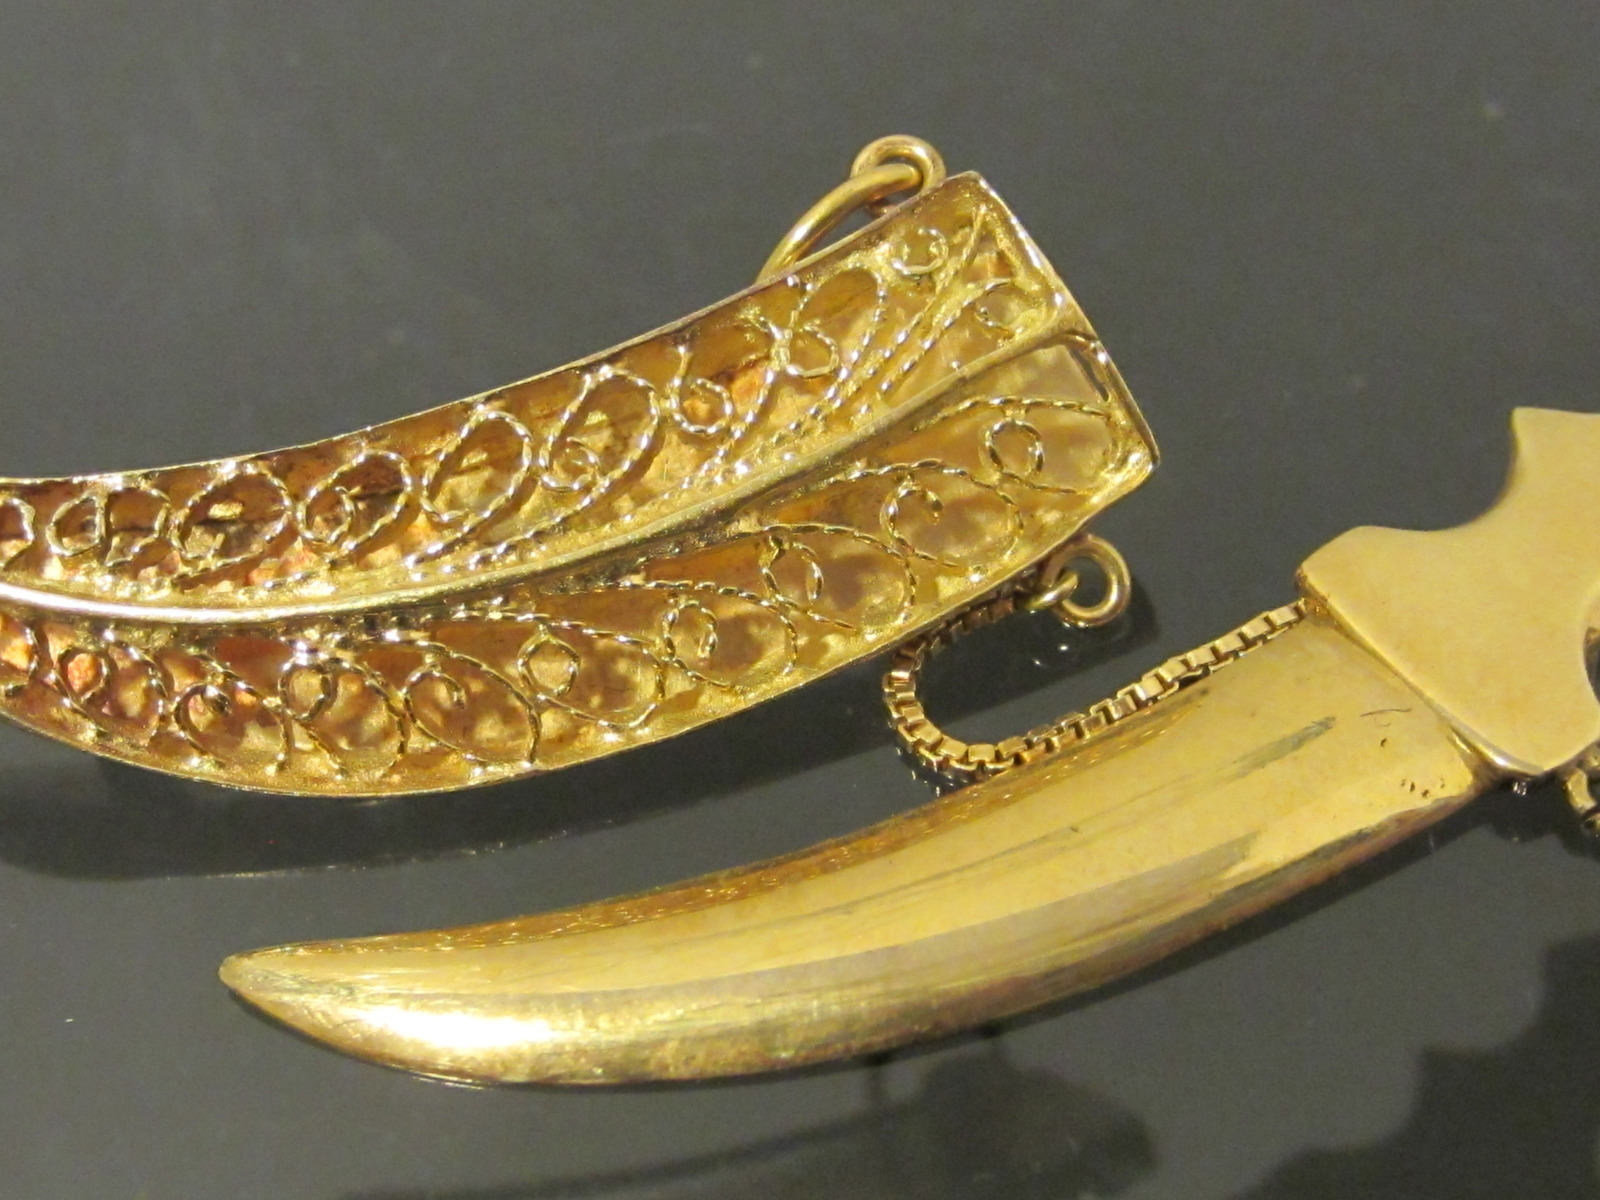 Antique 18K Solid Yellow Gold SWORD DAGGER IN SHEATH Brooch Pendant